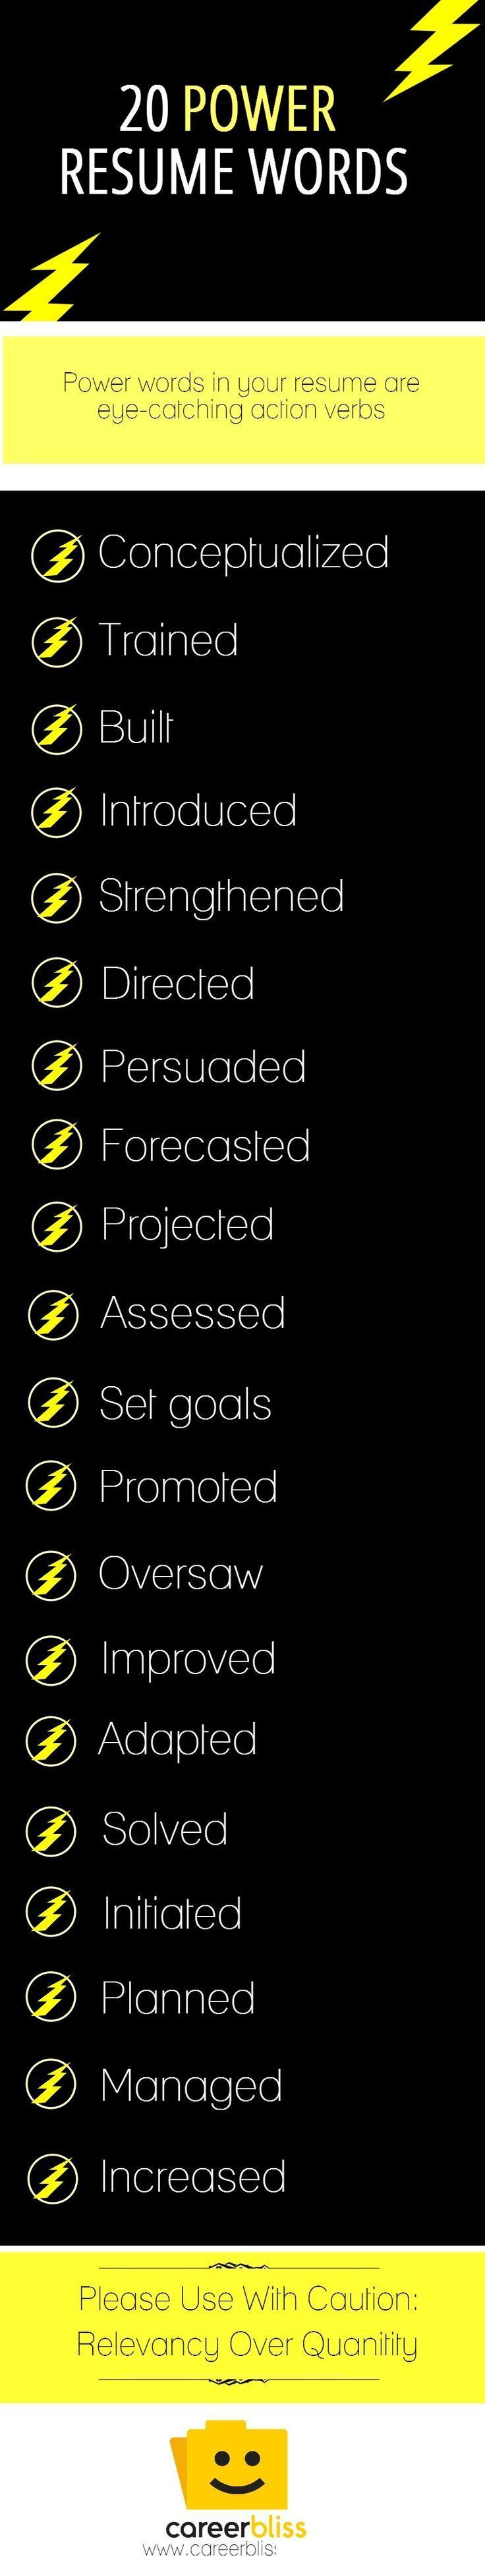 20 Resume Power Words (quality over quantity) | Misc. | Pinterest ...